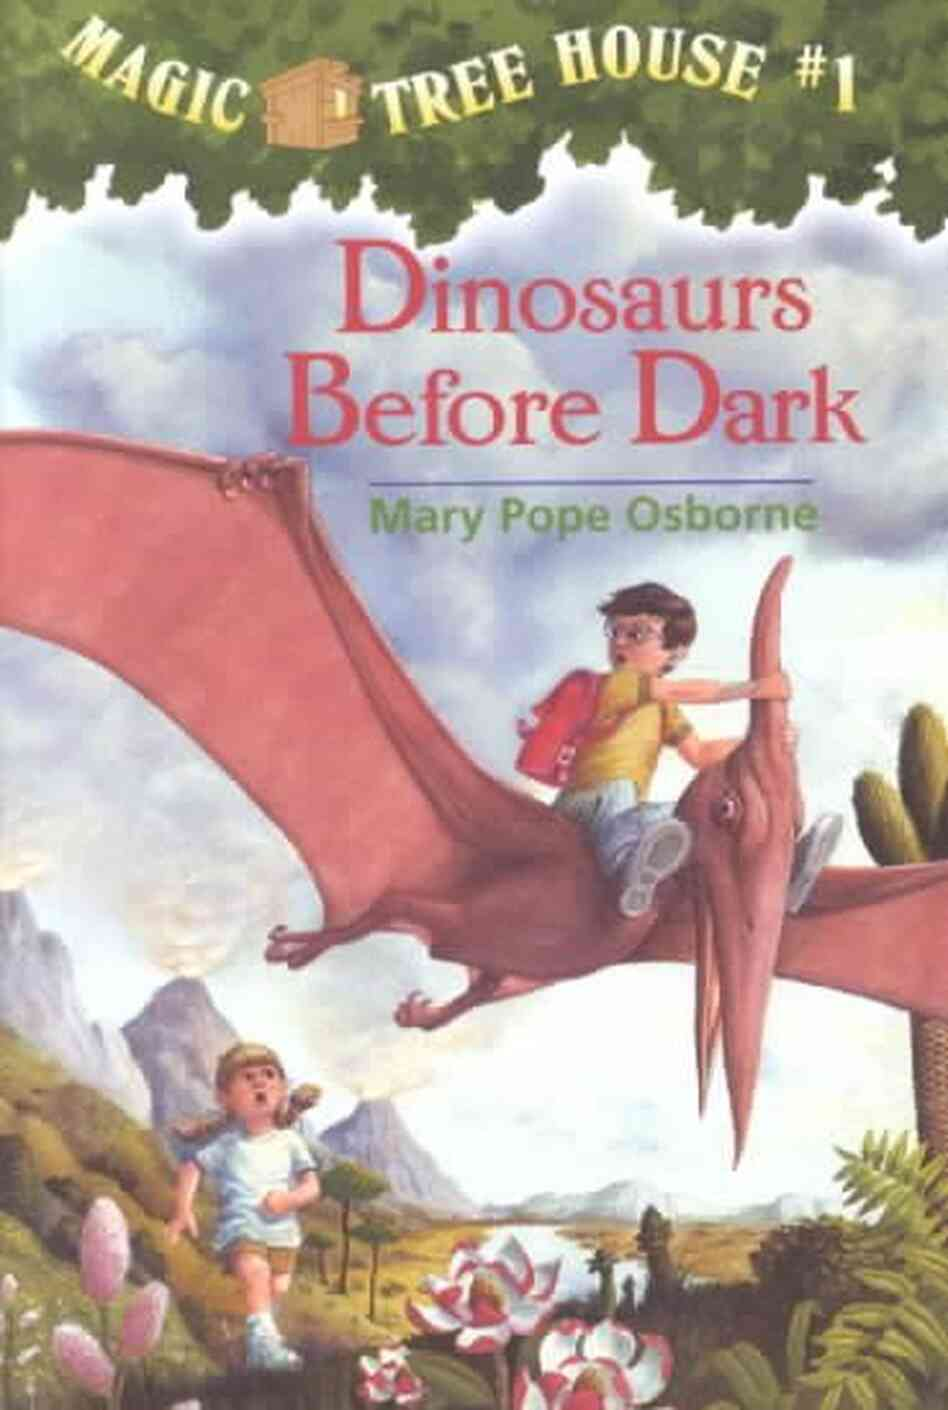 Dinosaurs Before Dark